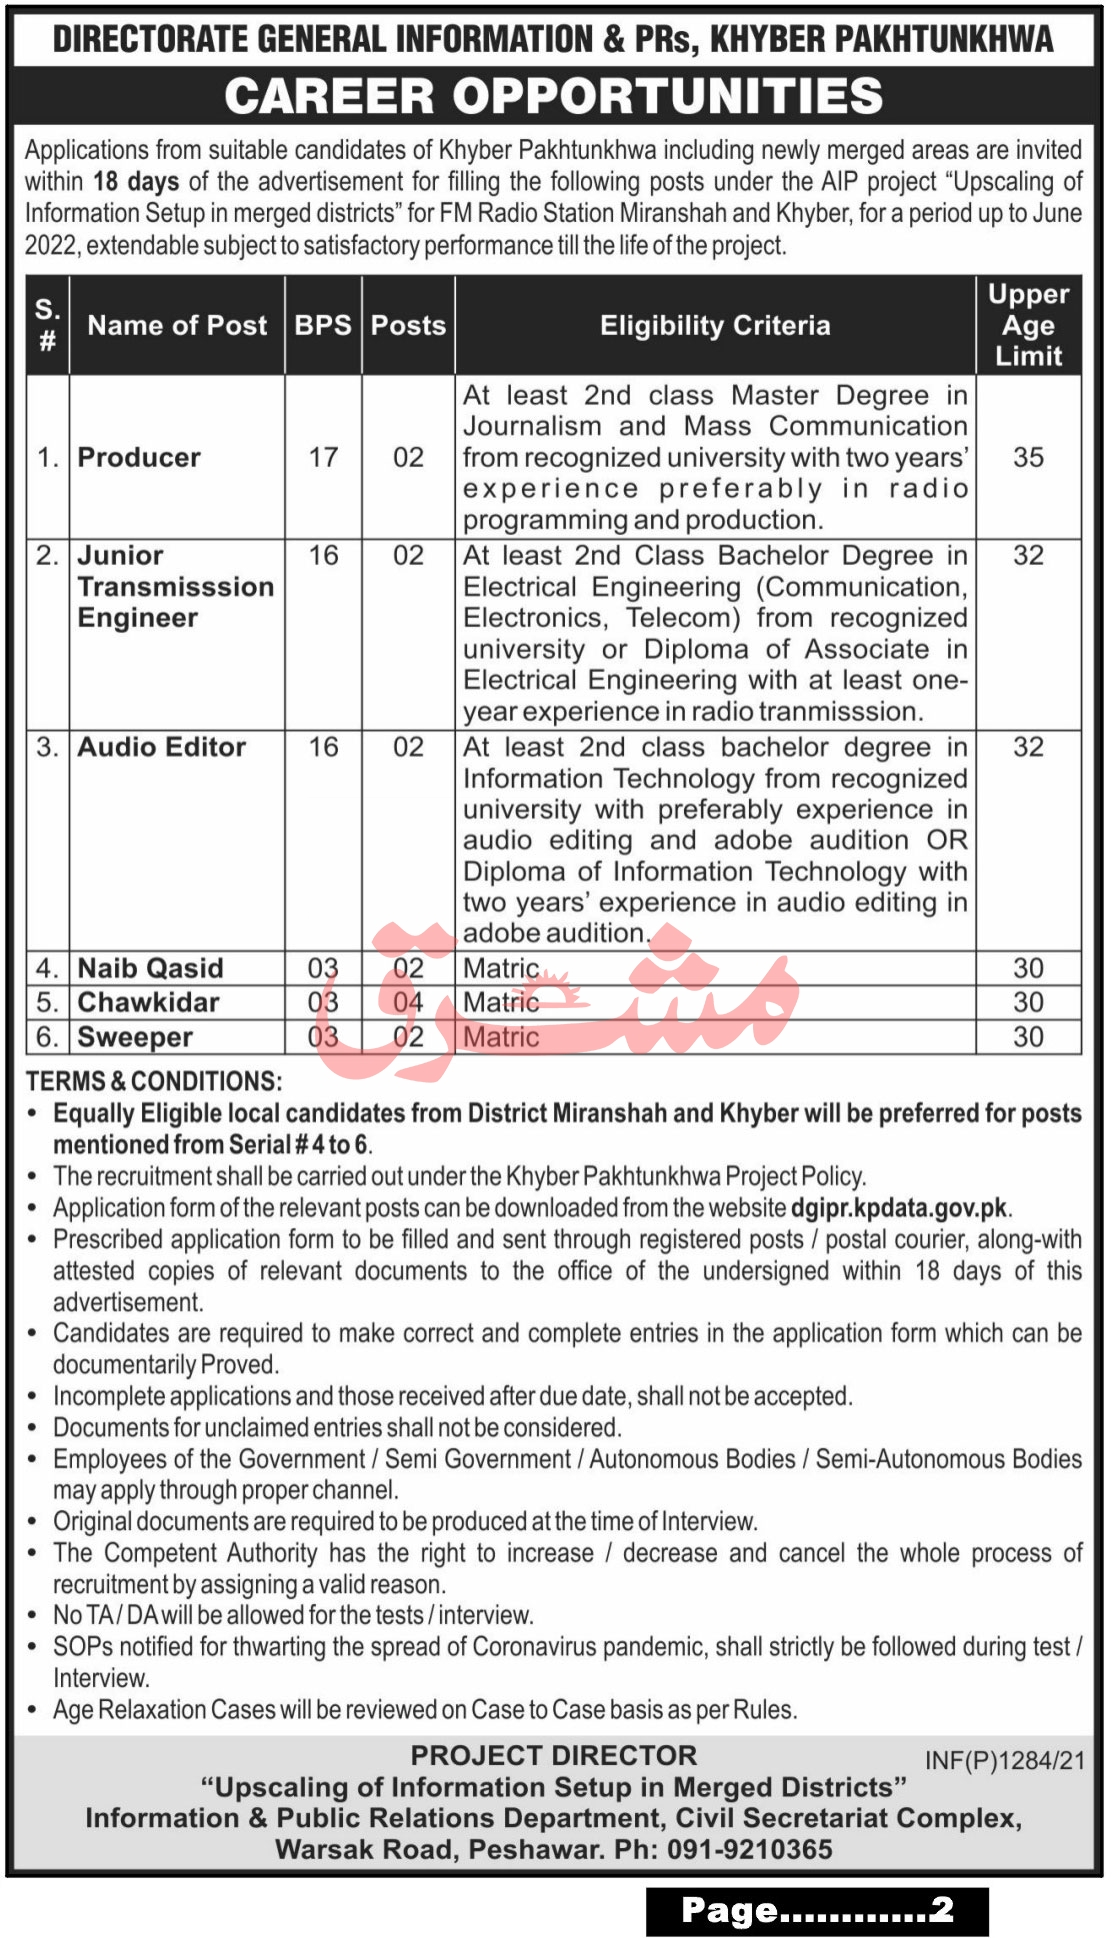 dgipr.kpdata.gov.pk - Download Job Application Form - Directorate General Information & PRs Jobs 2021 in Pakistan